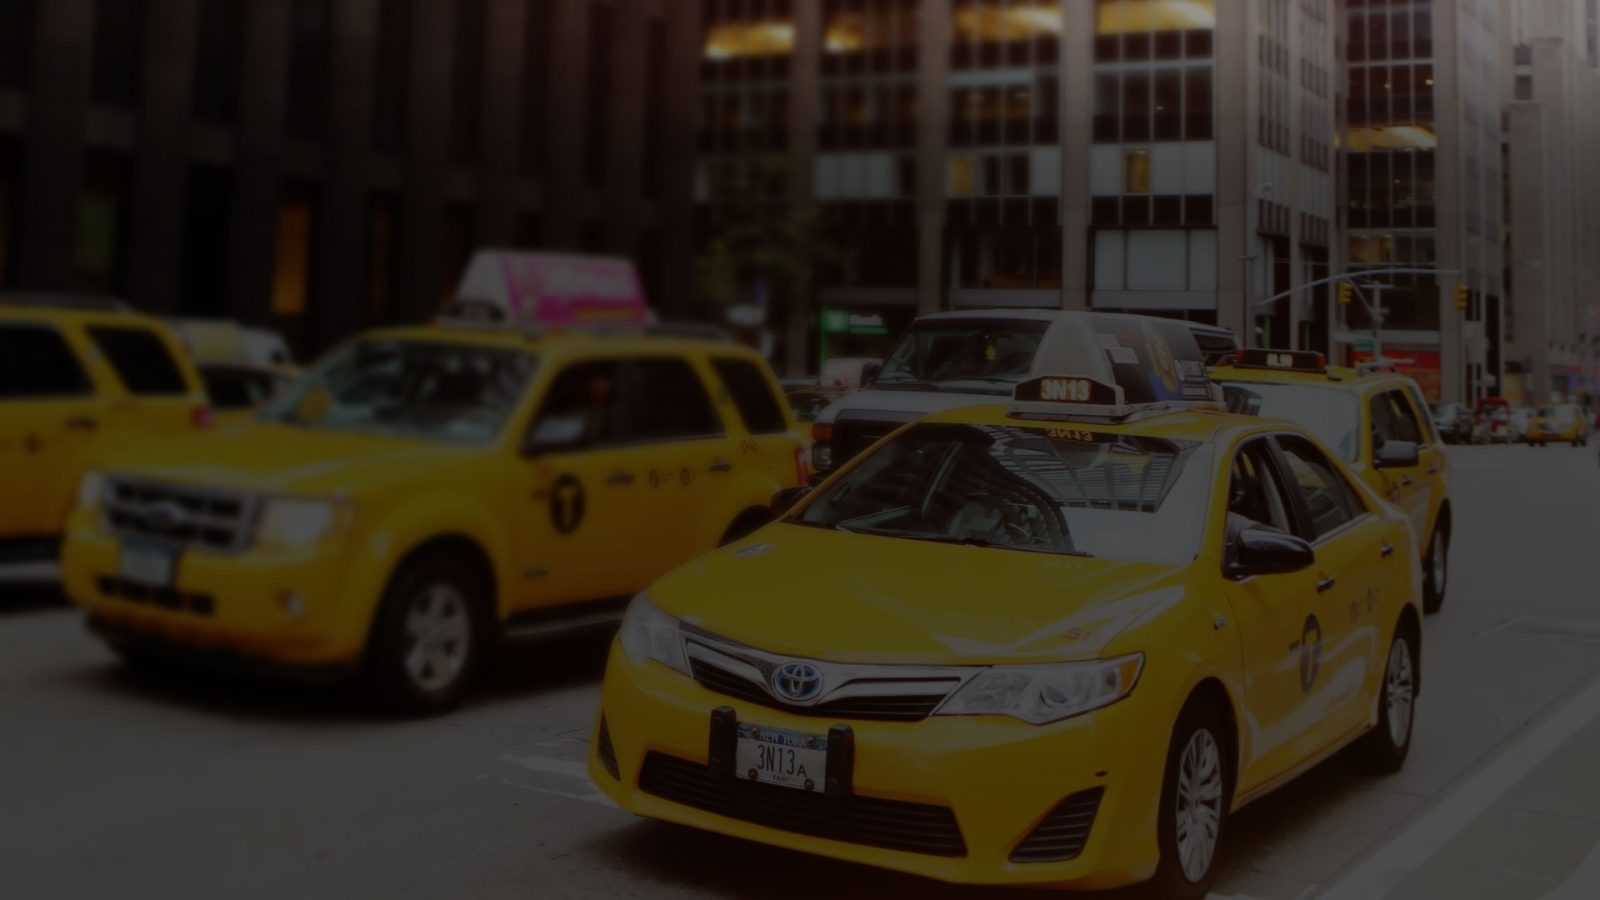 TDS – Taxi Dispatch Solutions